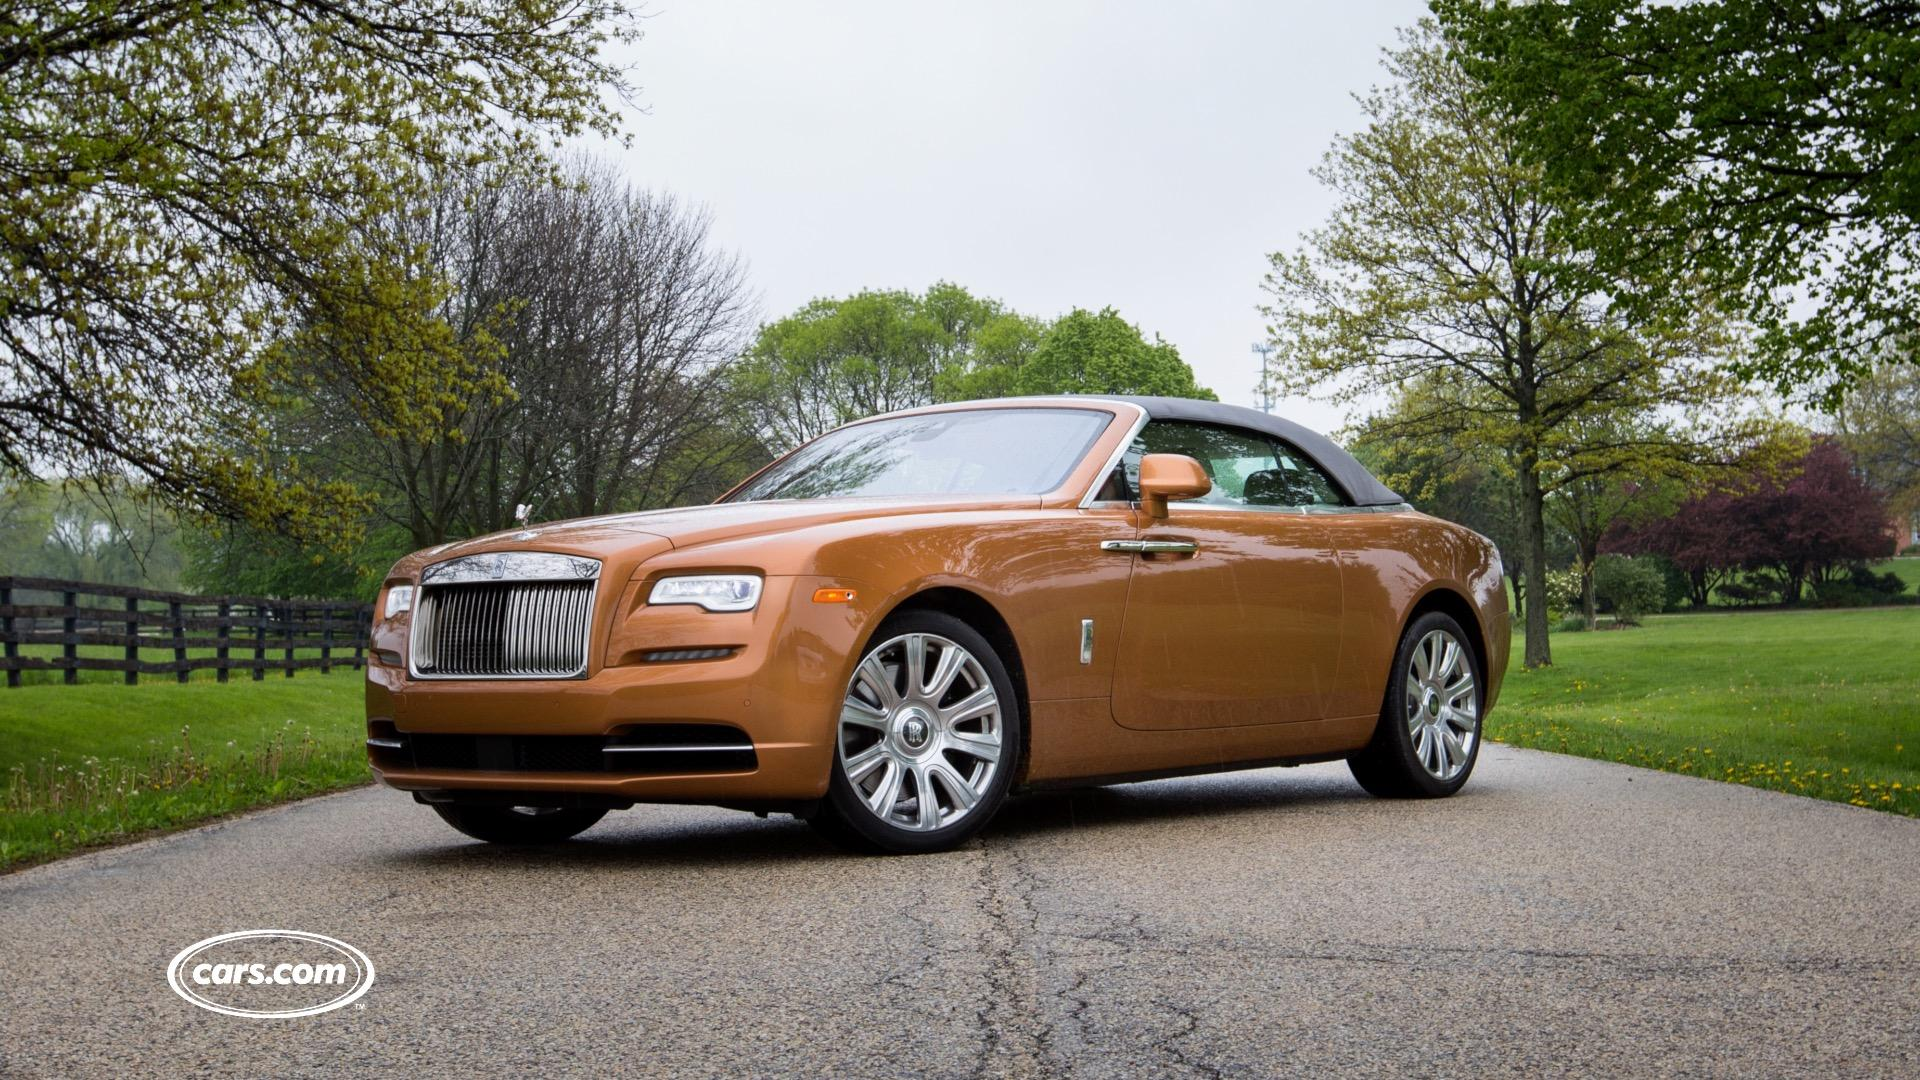 Video: 2016 Rolls-Royce Dawn